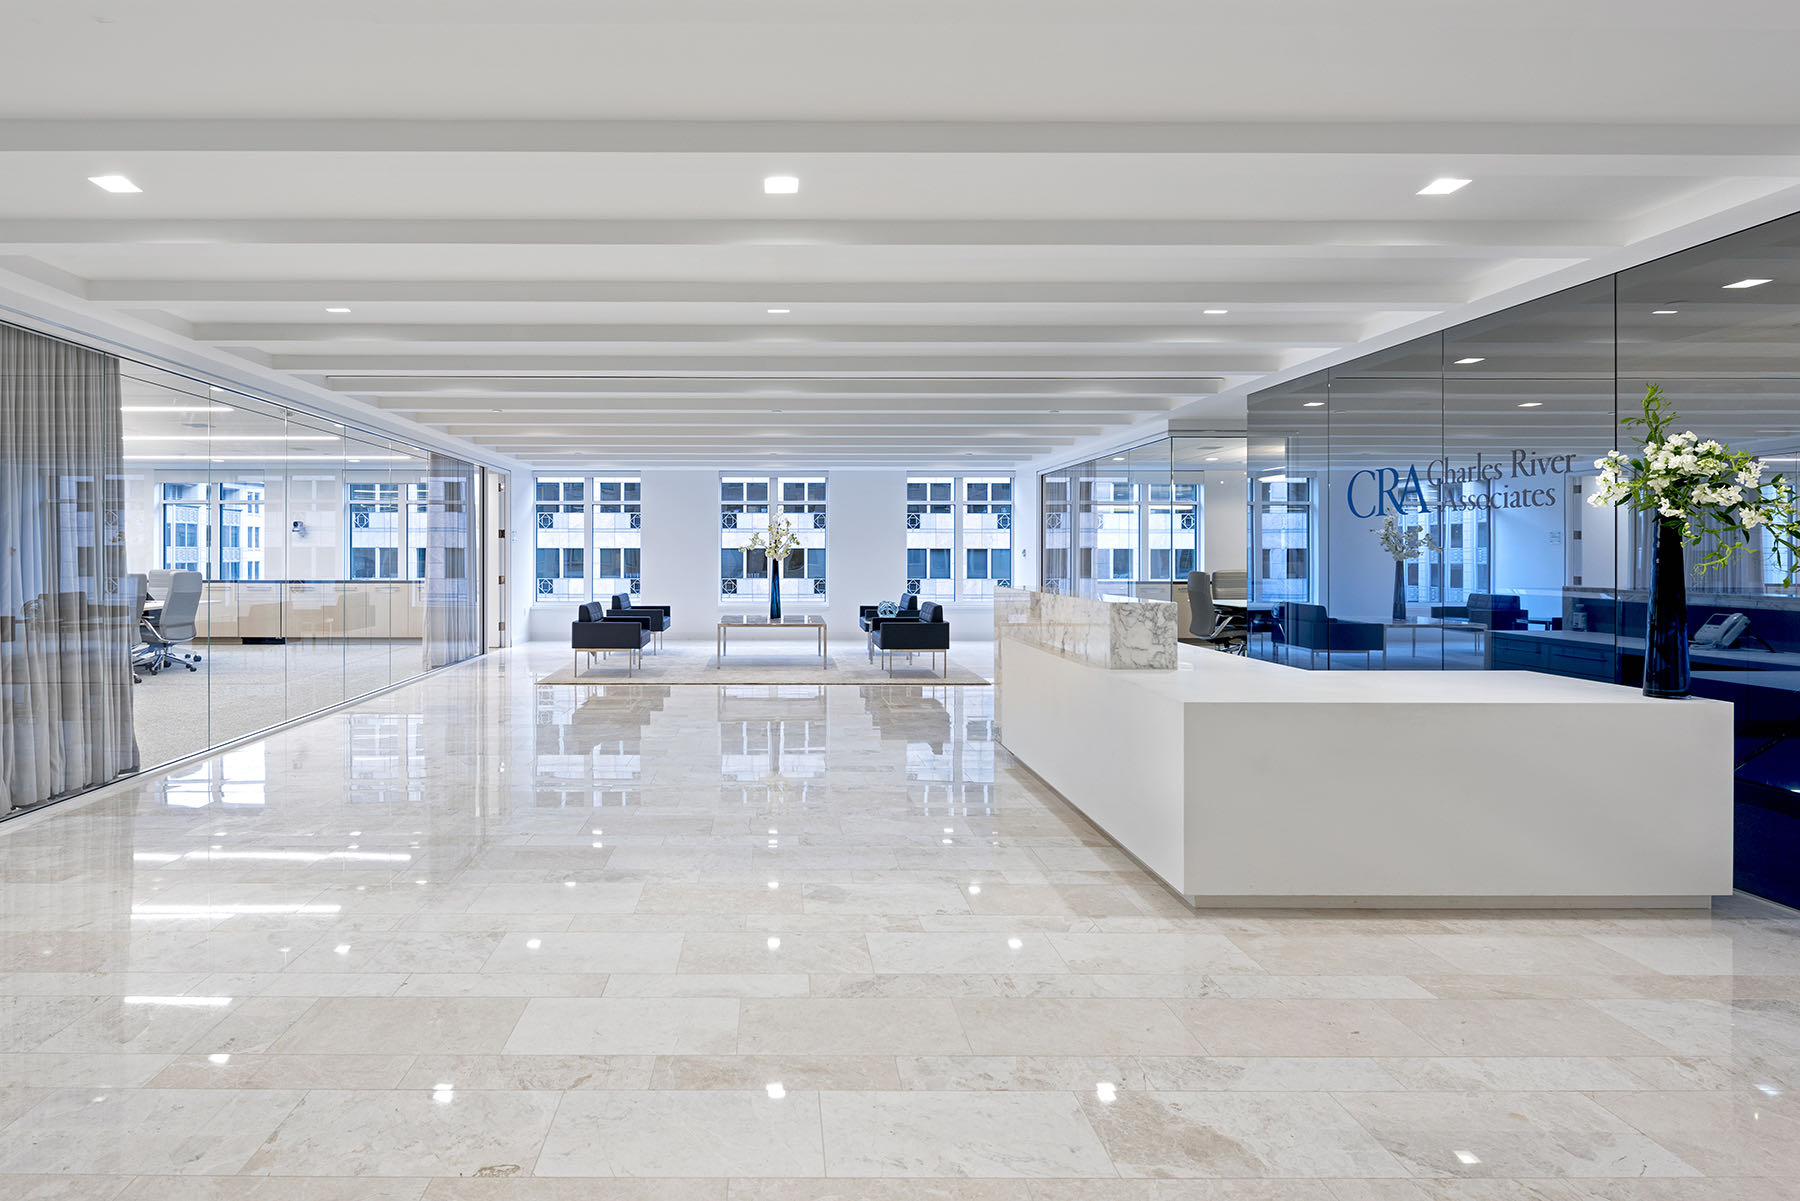 charles-river-associates-dc-office-2